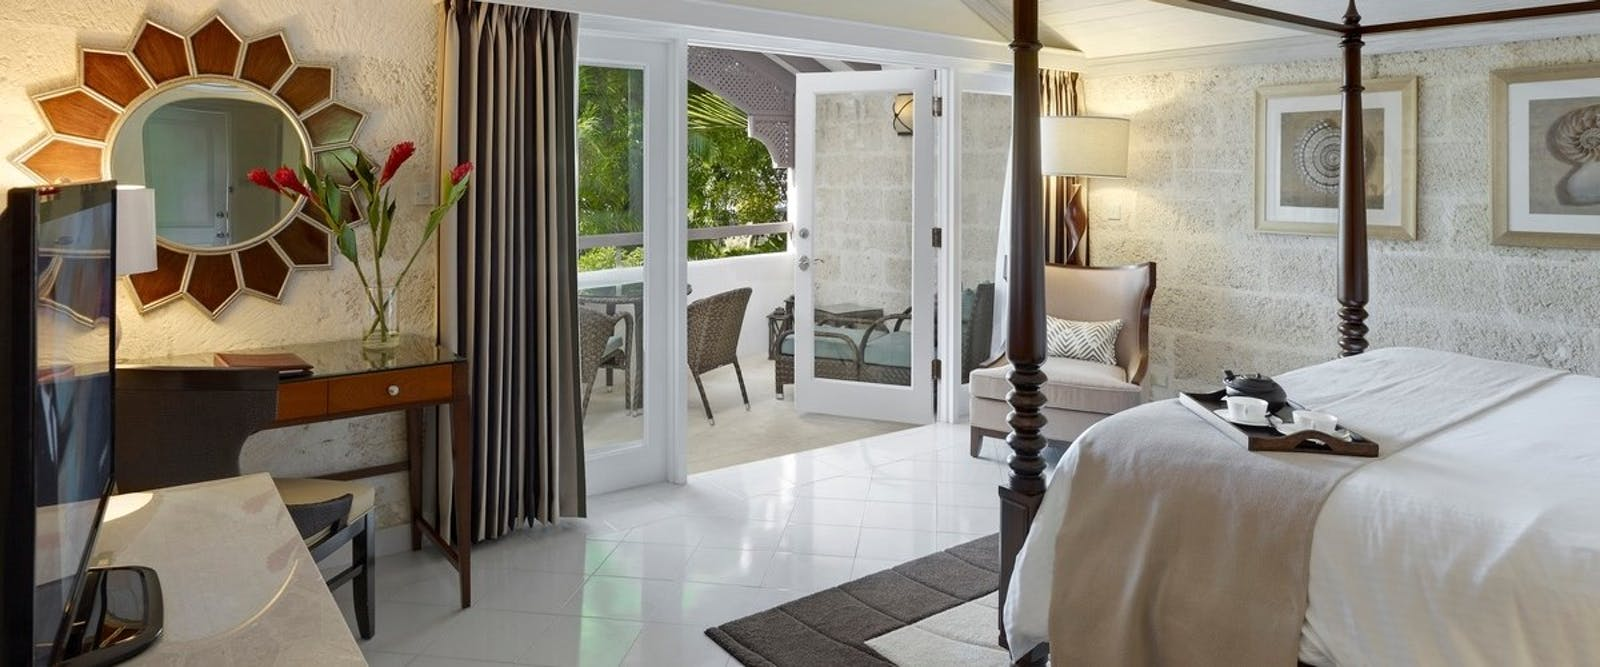 Luxury Poolside Room at Colony Club by Elegant Hotels, Barbados, Caribbean